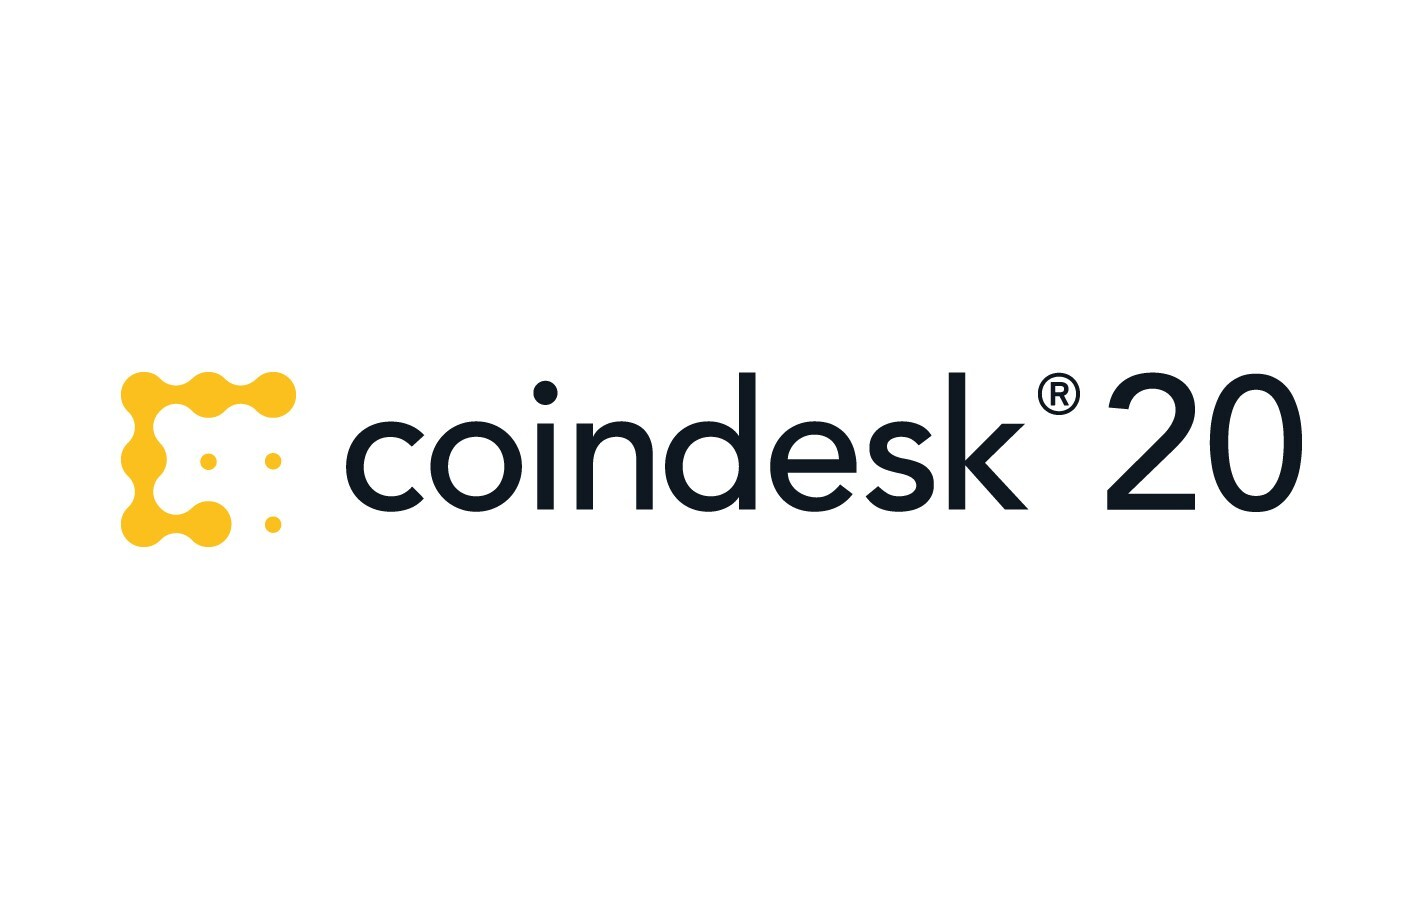 Introducing The Coindesk 20 The Assets That Matter Most